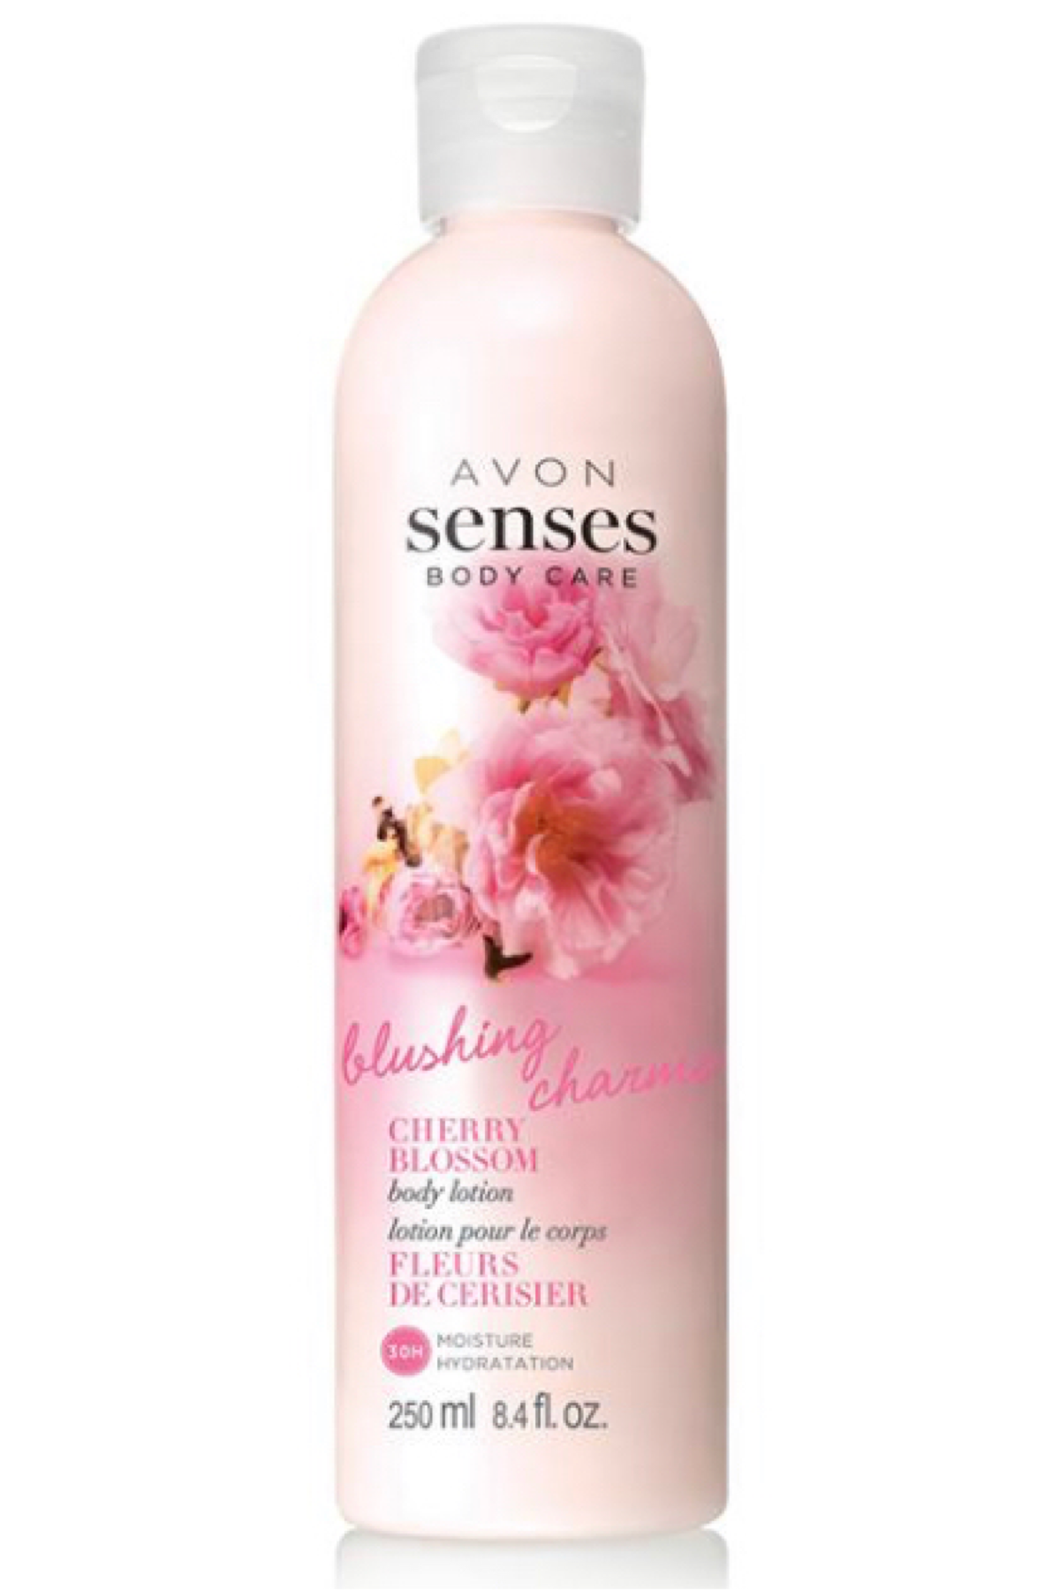 Blushing Cherry Blossom Body Lotion 250ml